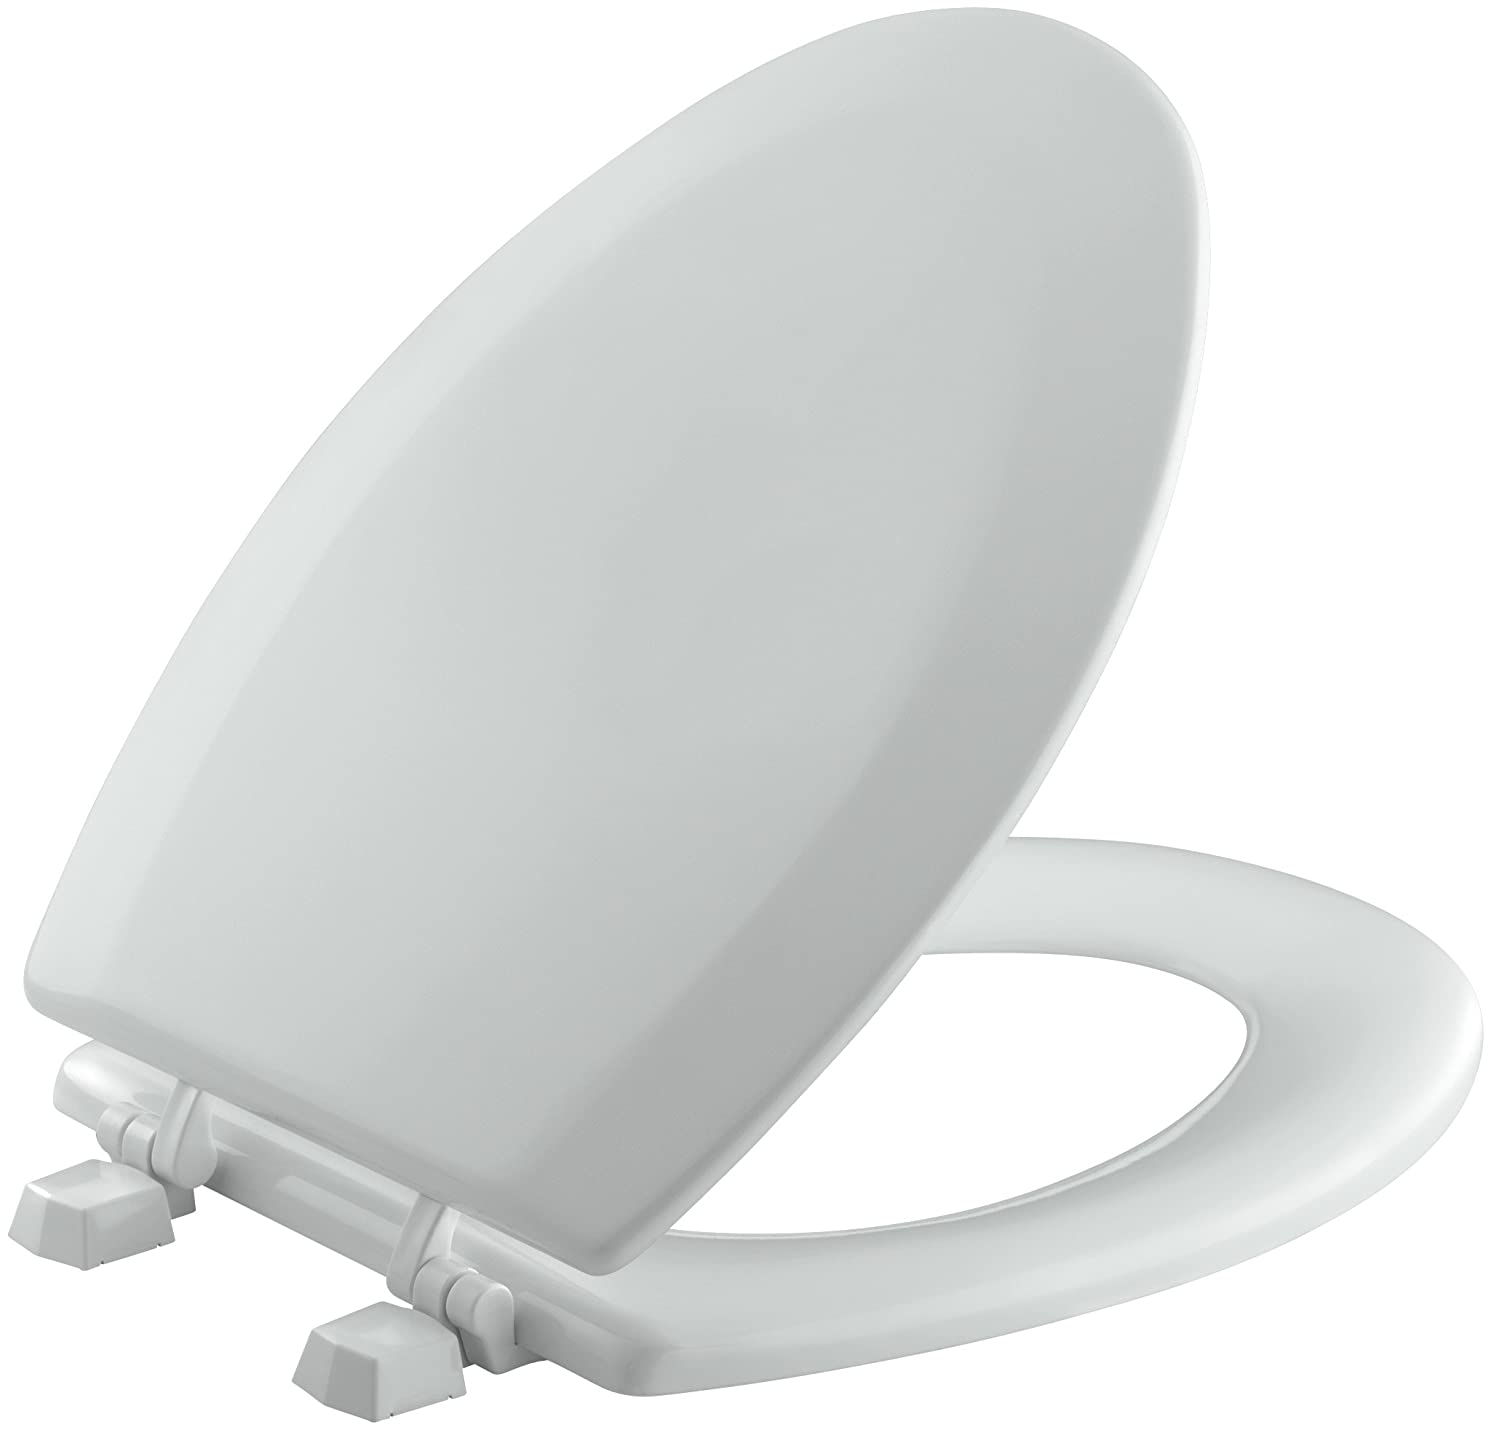 KOHLER K-4712-T-95 Triko Elongated Molded-Wood Toilet Seat with Color-Matched Hinges, Ice Grey